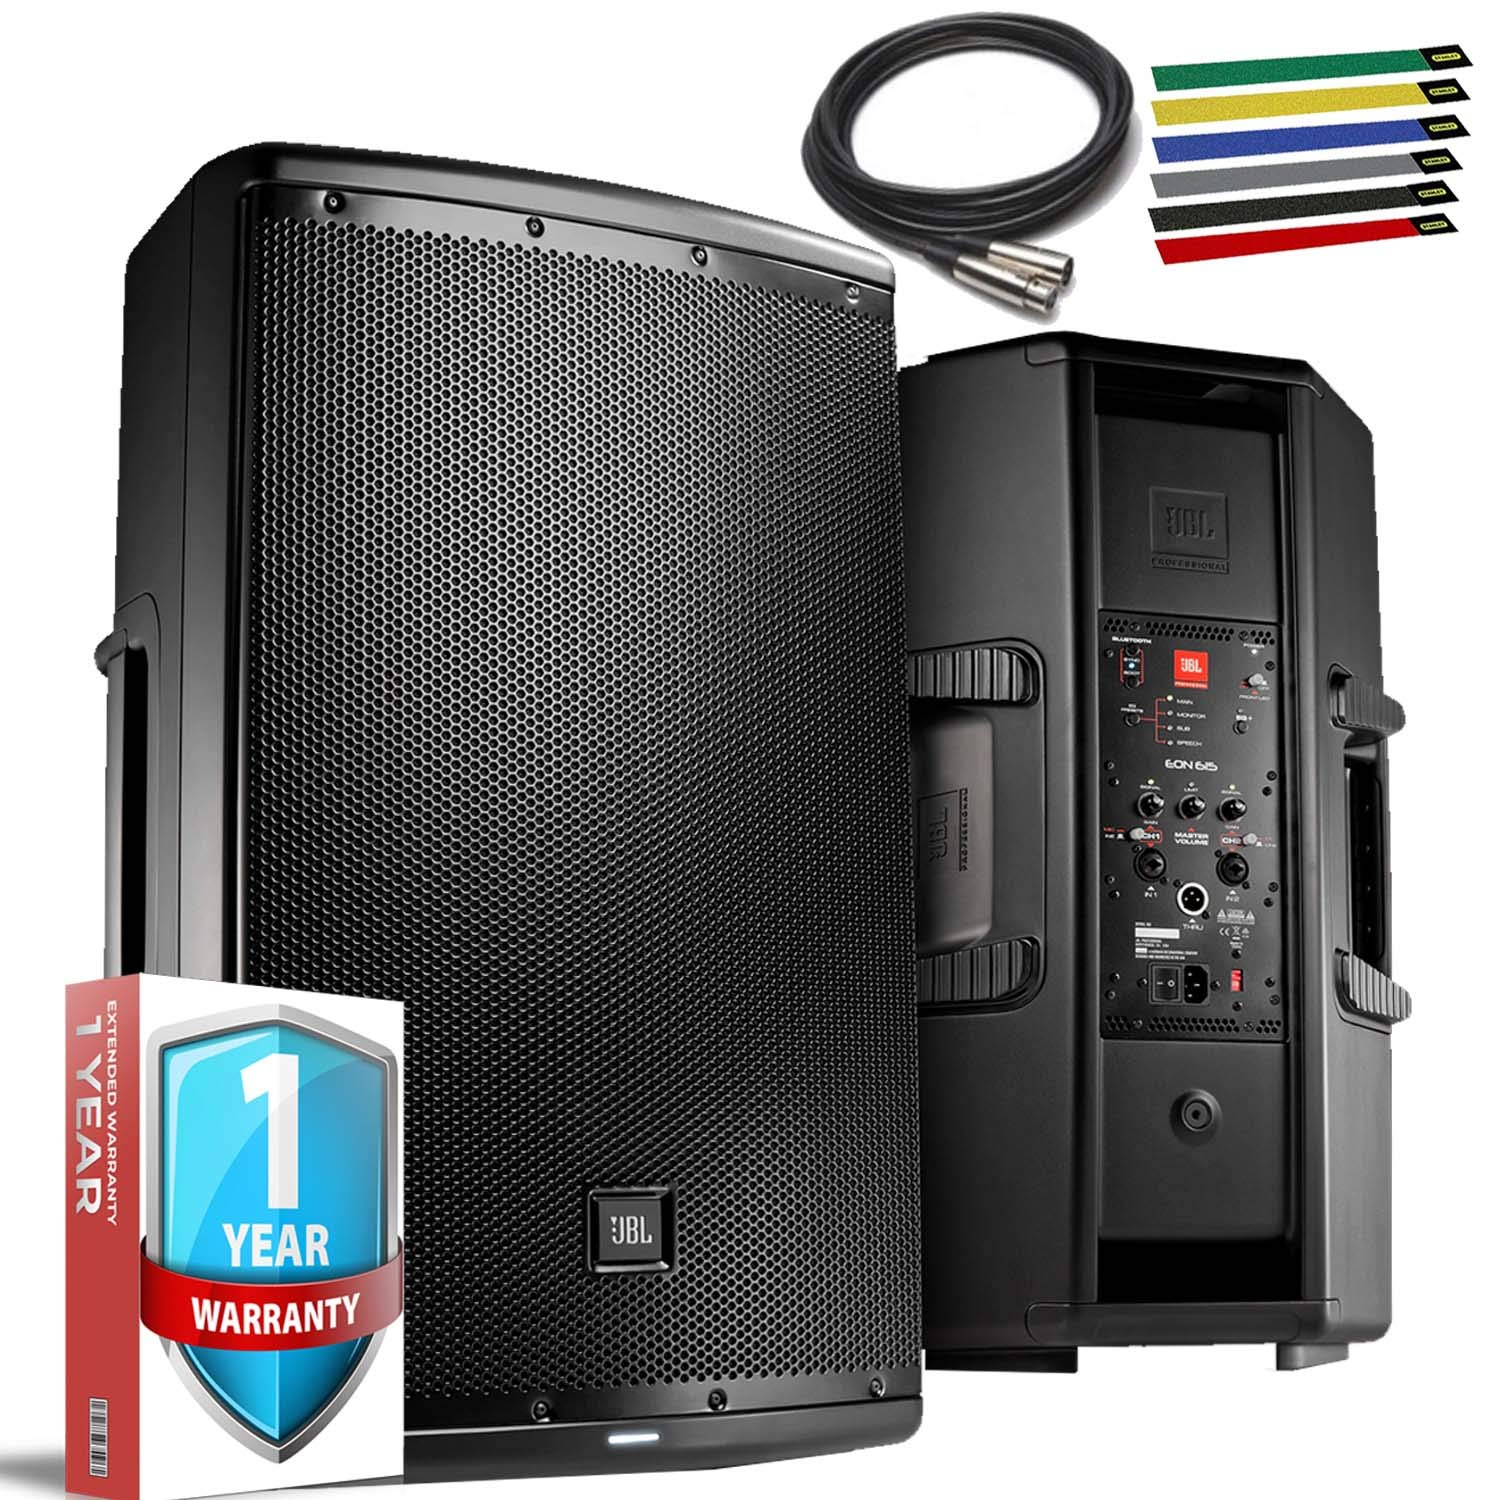 JBL Professional EON615 Portable 15'' 2-Way Multipurpose Self-Powered Sound Reinforcement Speaker with 10ft XLR, Cable Ties and 1-Year Warranty by JBL